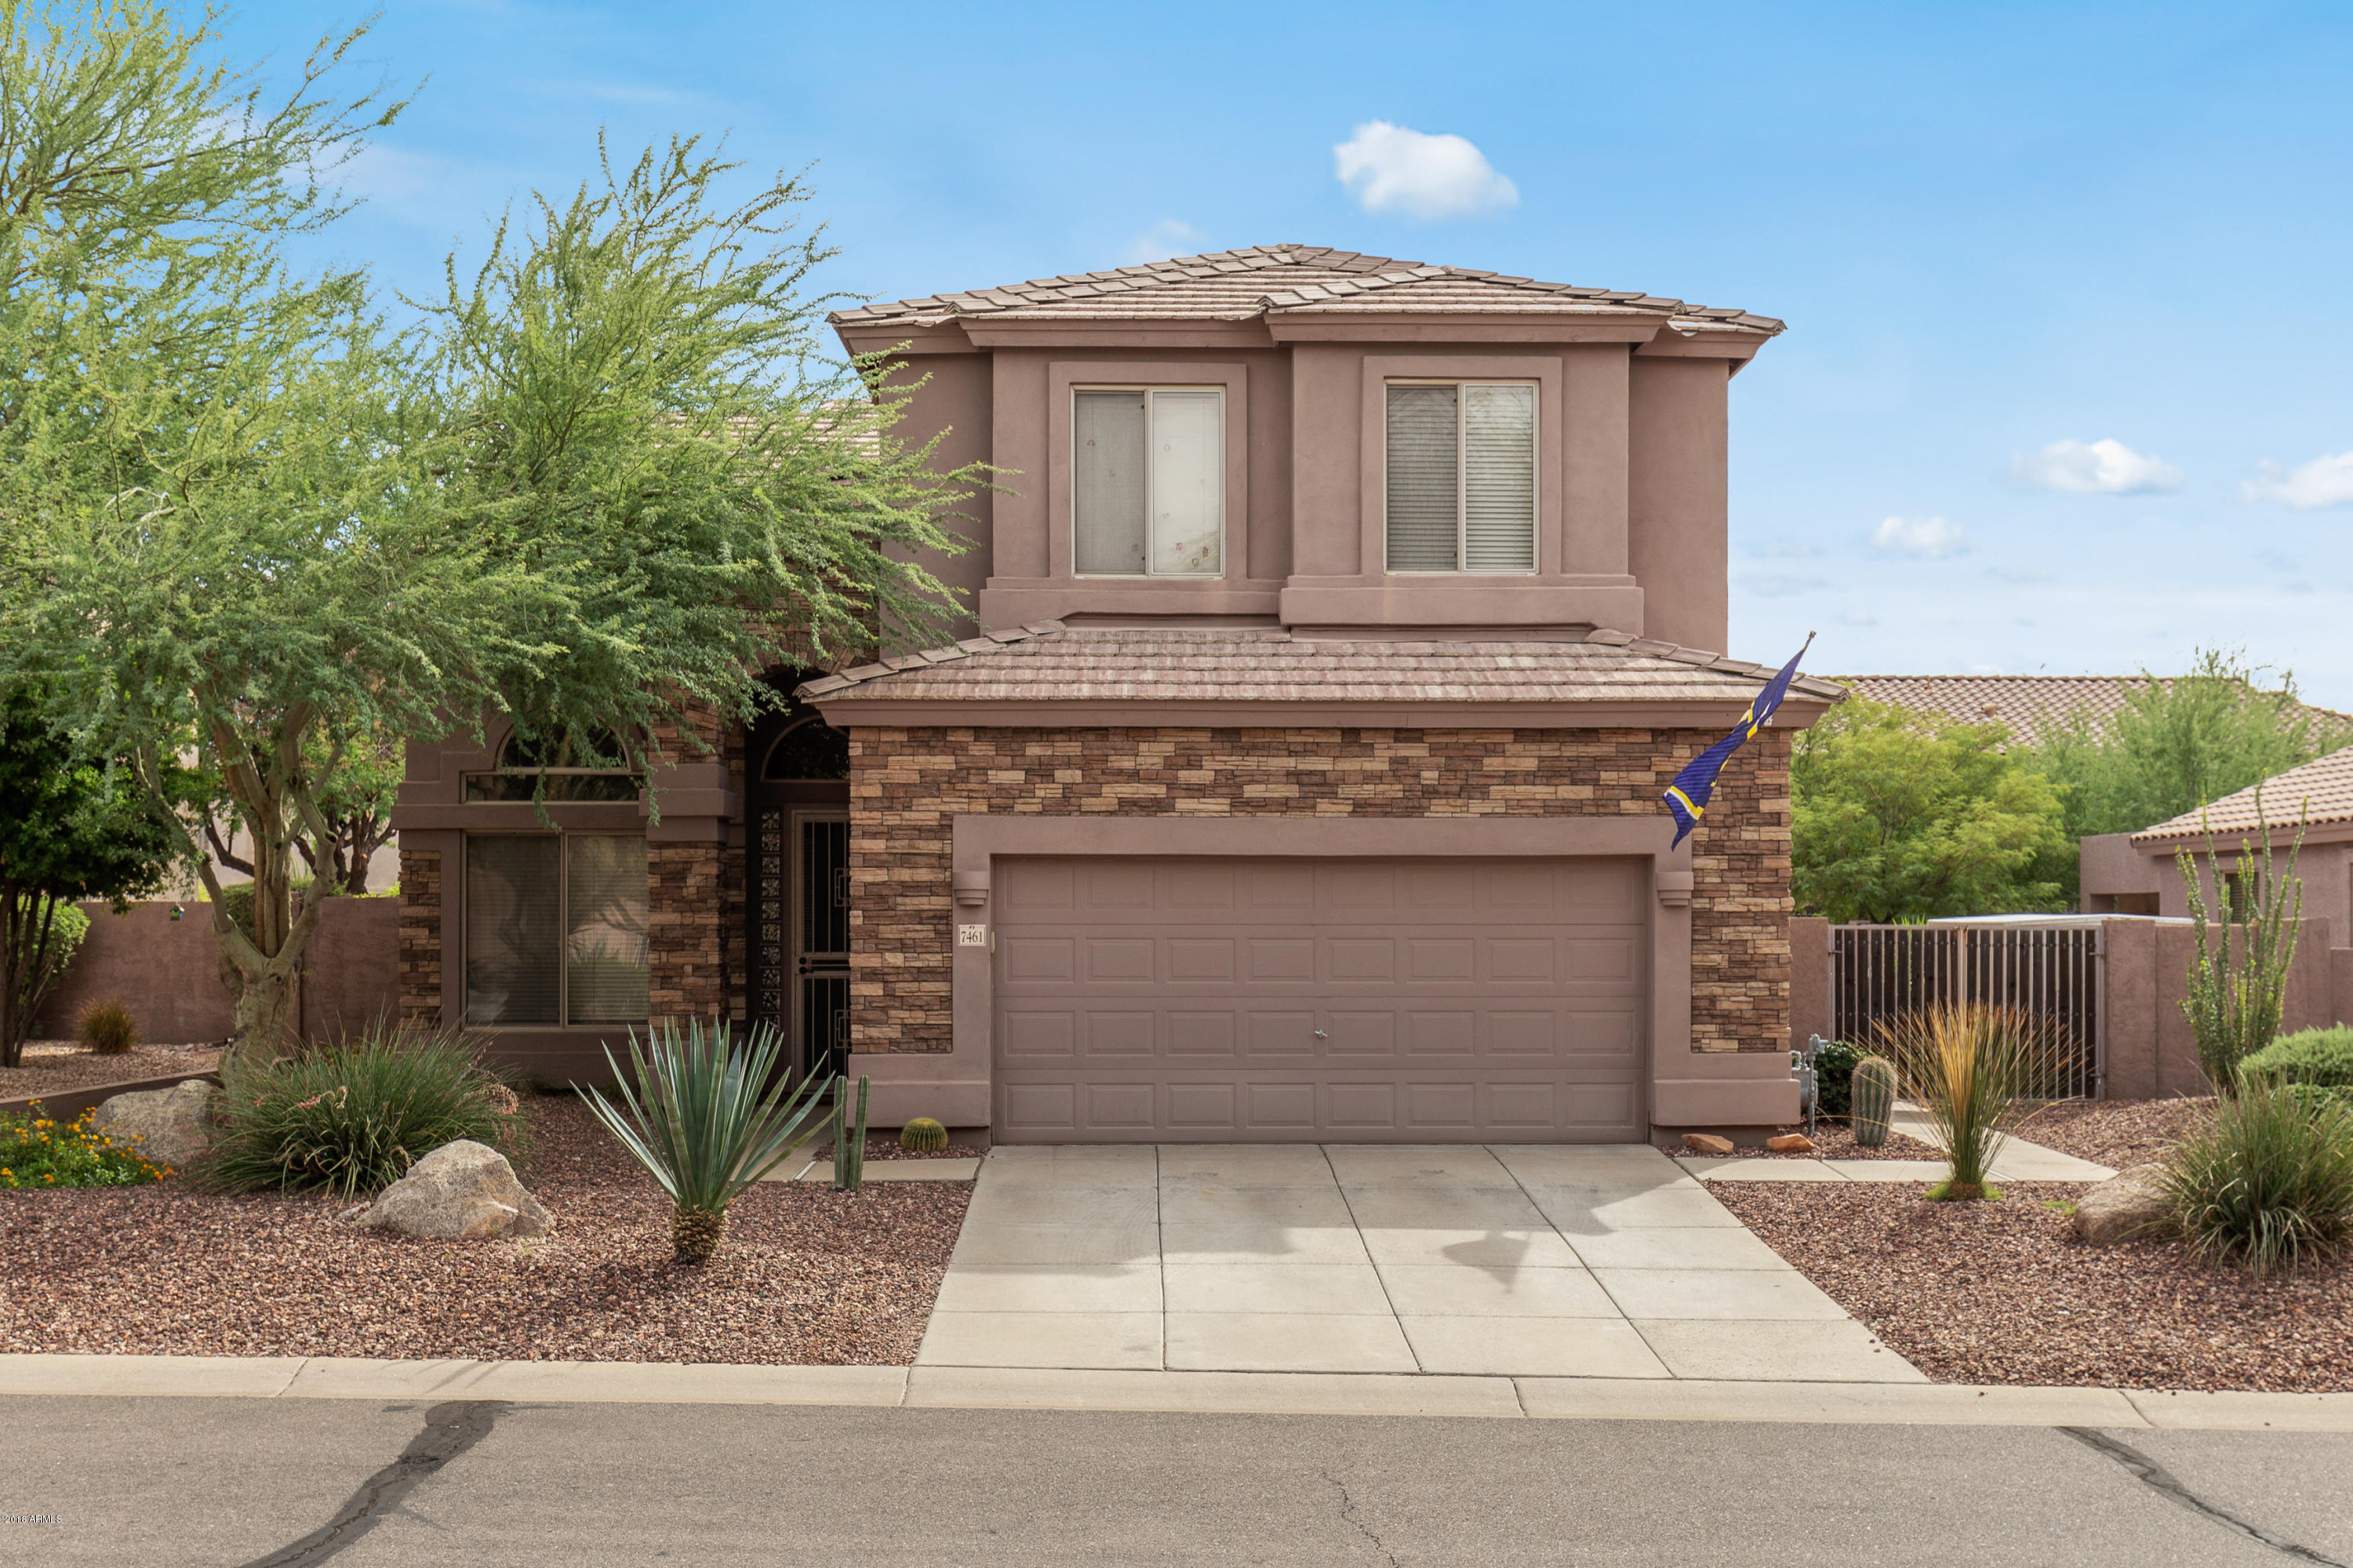 Photo of 7461 E ODESSA Circle, Mesa, AZ 85207